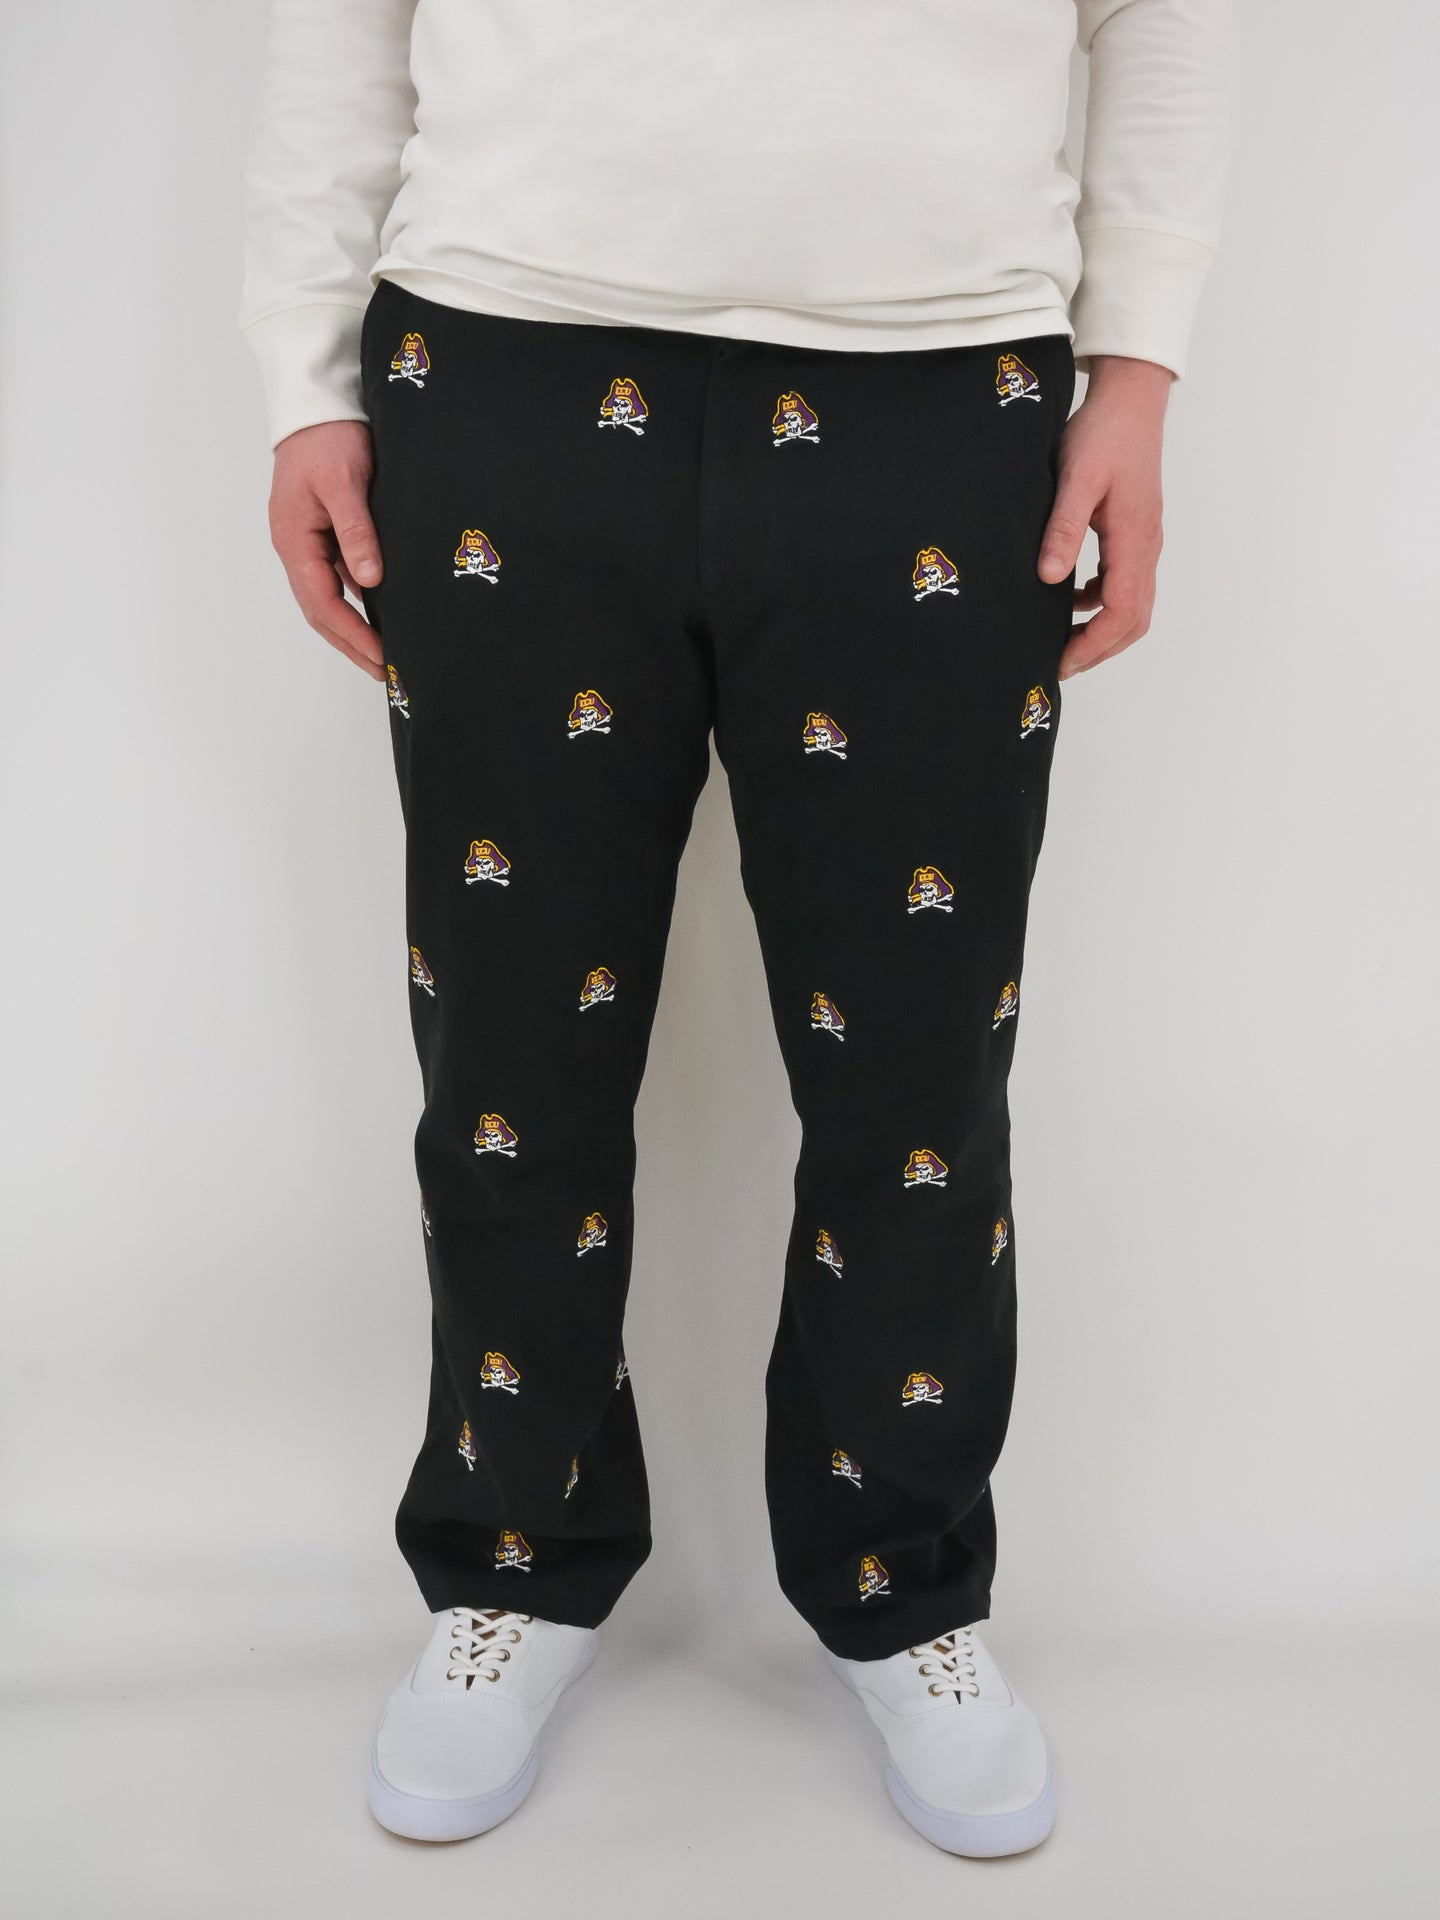 ECU Skull & Bones Black Pants